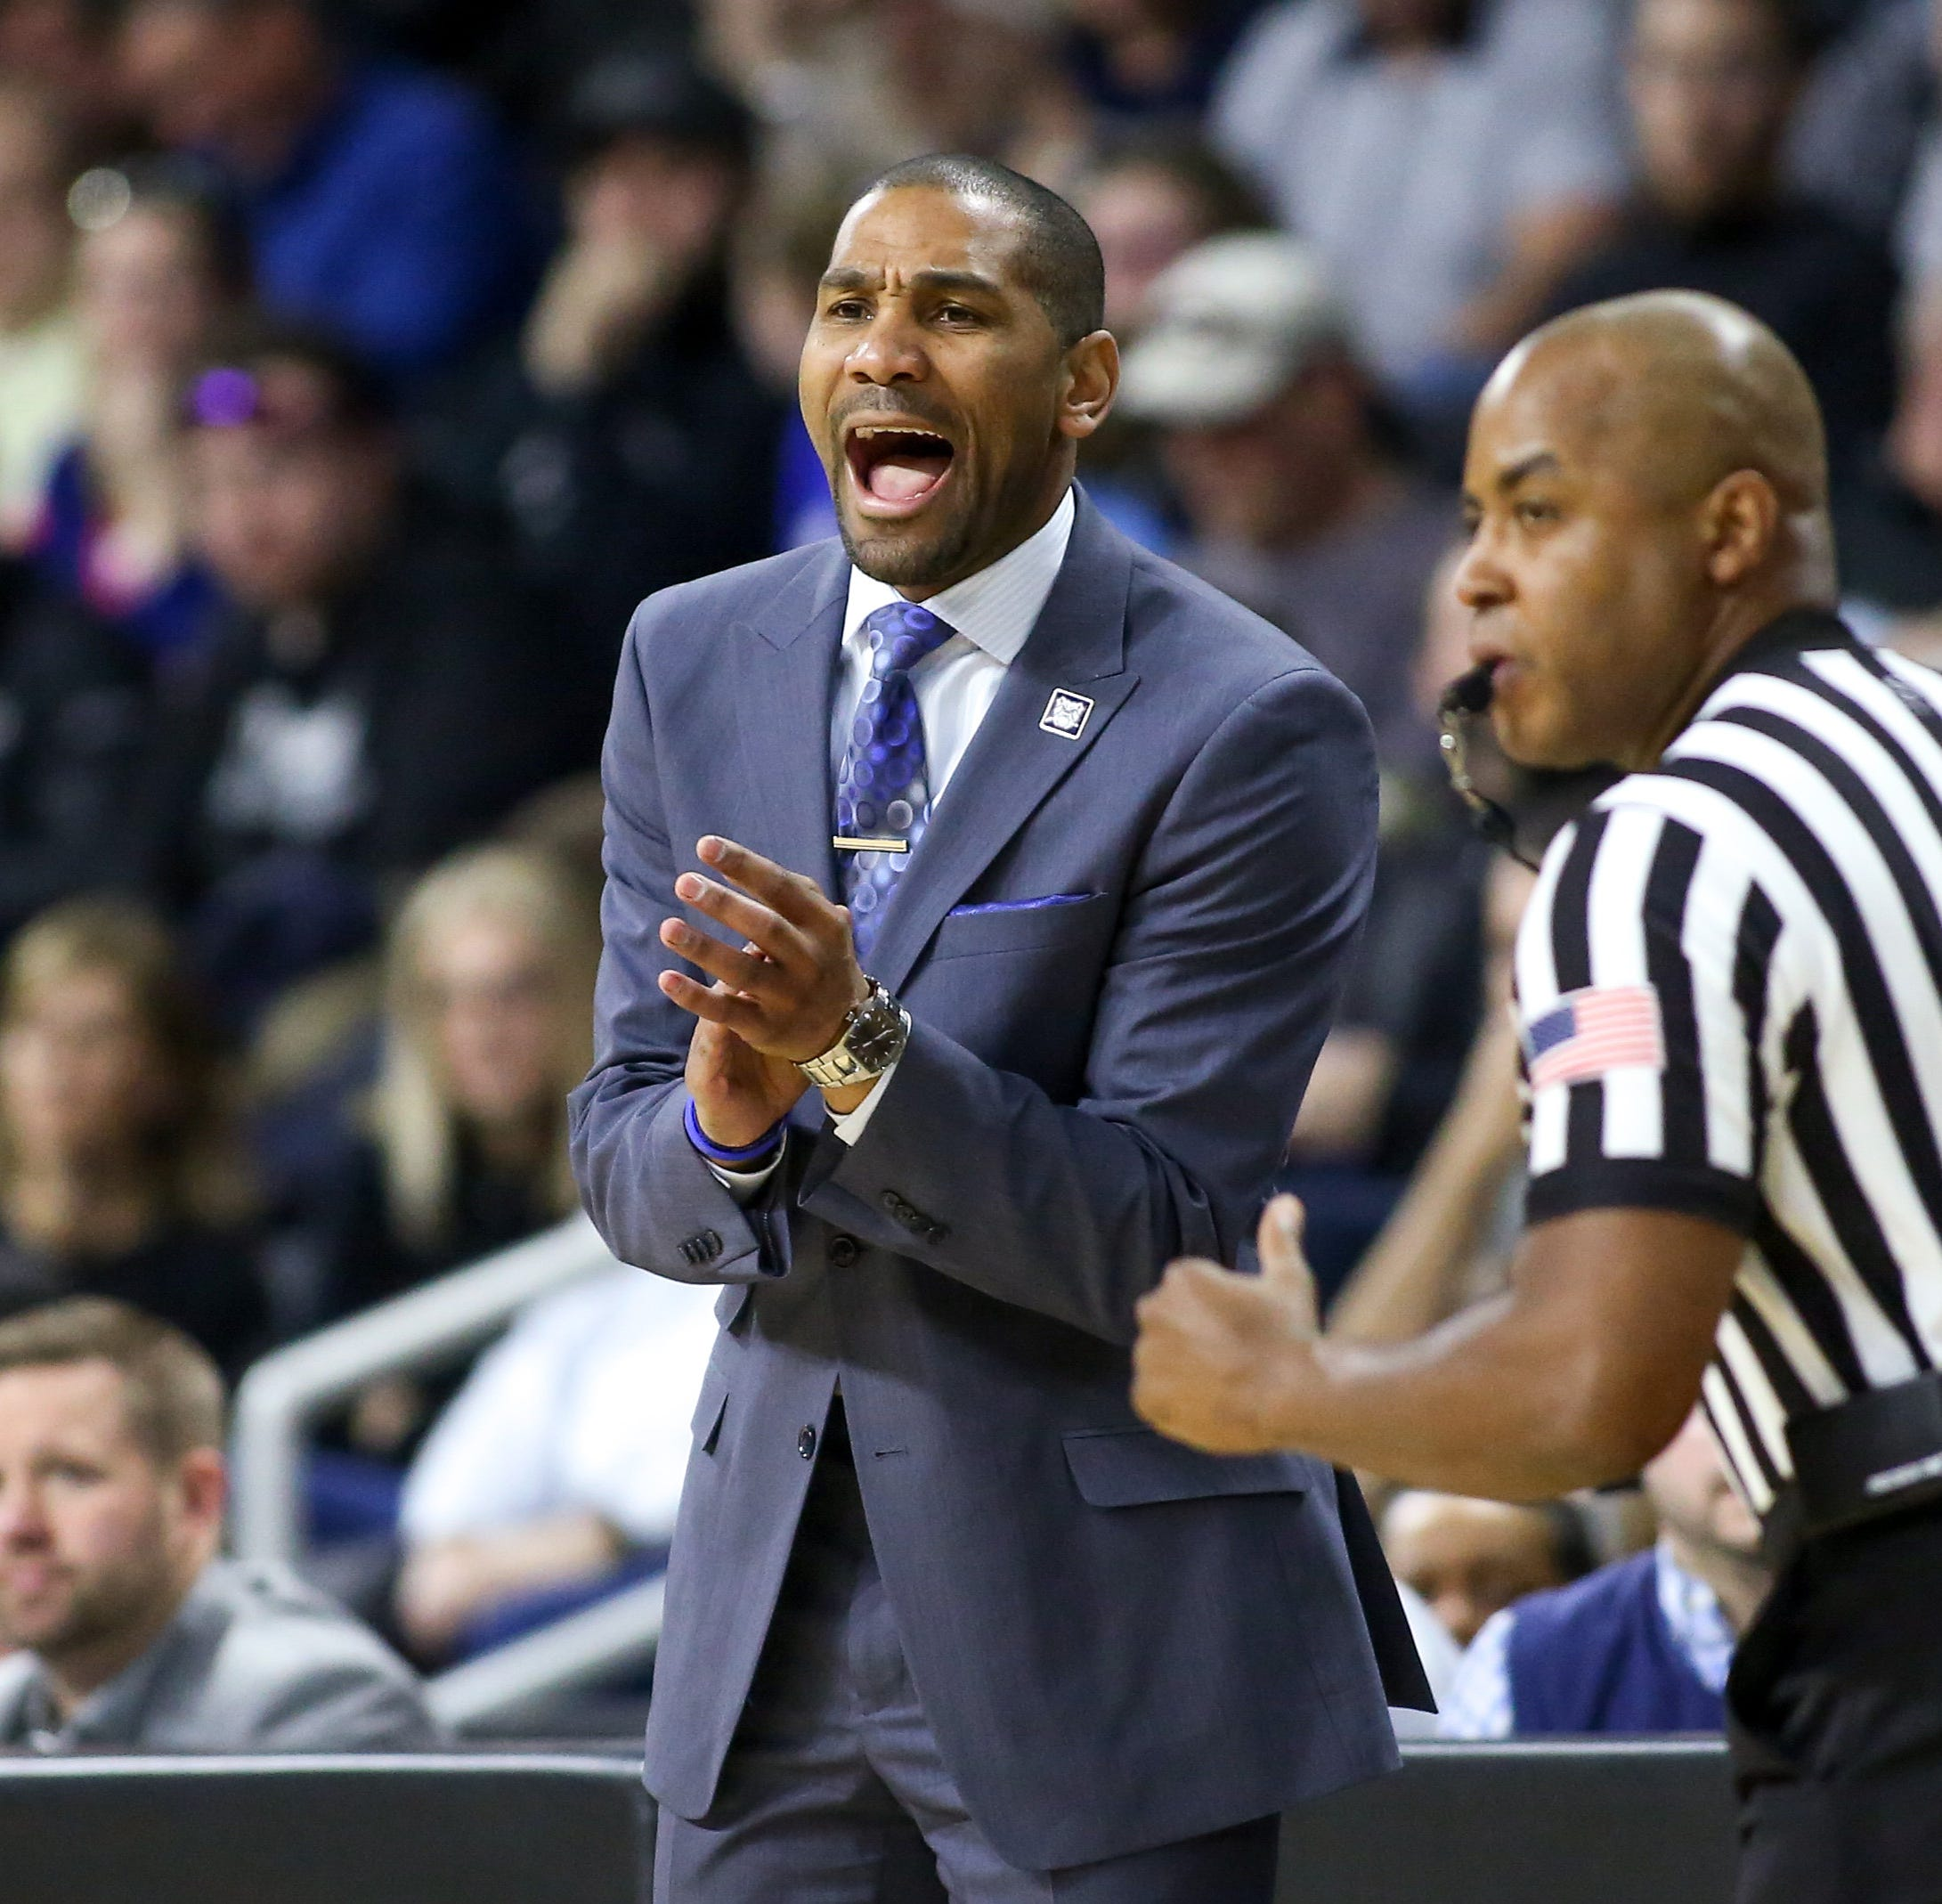 Butler's season ends with an NIT defeat and a losing record